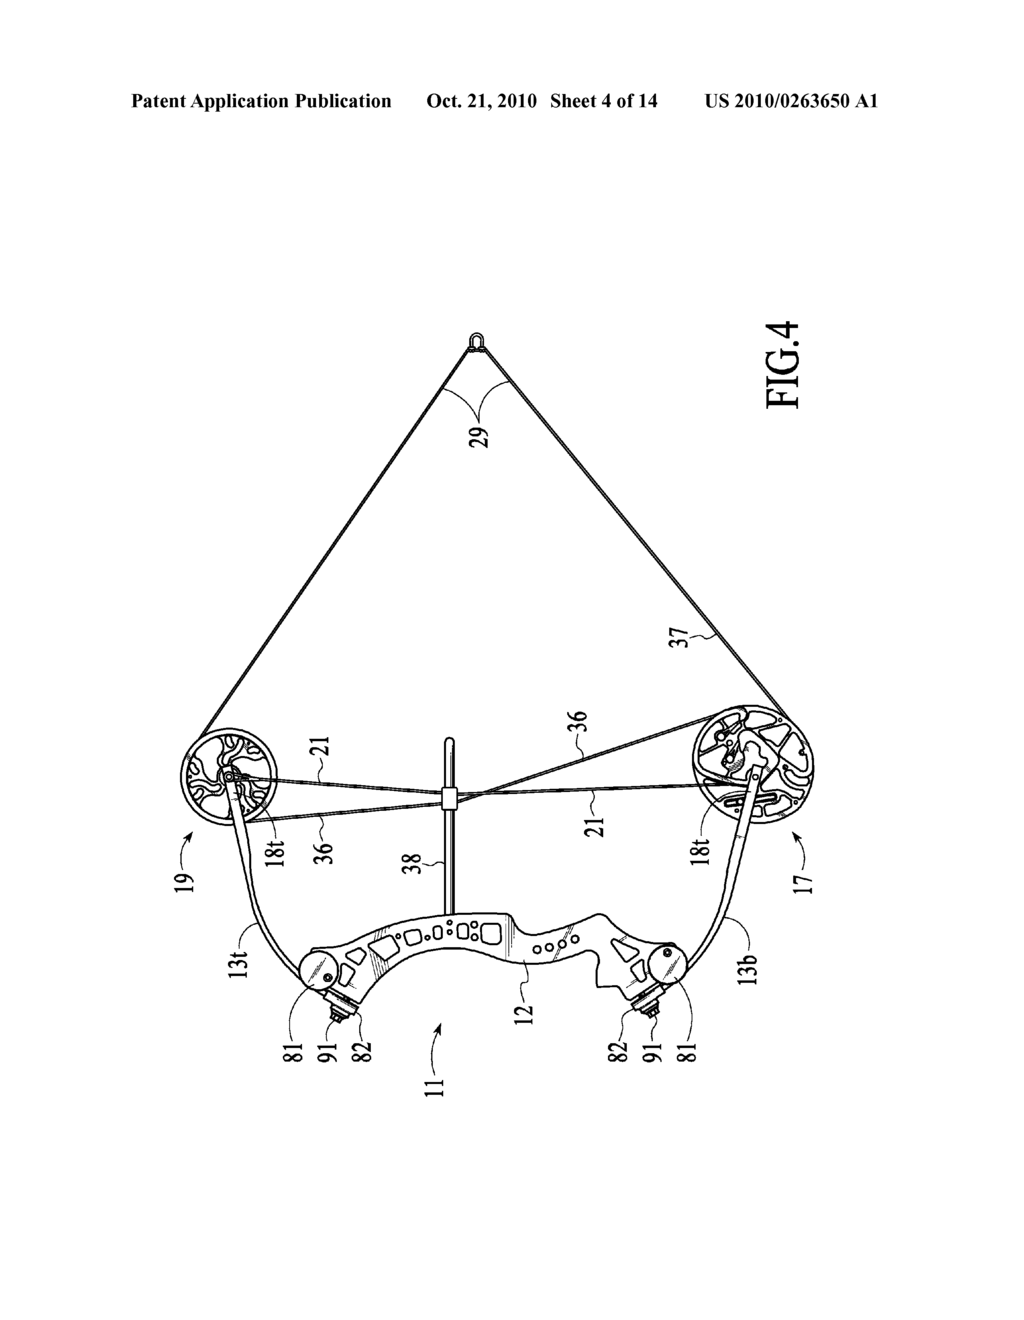 Single-Cam Compound Bow - diagram, schematic, and image 05 on compound bow labels, compound bow cables, compound bow ideas, compound bow books, compound bow power, compound bow models, compound bow operation, compound bow illustrations, compound bow blueprints, compound bow adjustments, compound bow disassembly, compound bow diagrams, compound bow basics, compound bow components, compound bow description, compound bow specs, compound bow sites, compound bow history, compound bow concepts, compound bow layout,